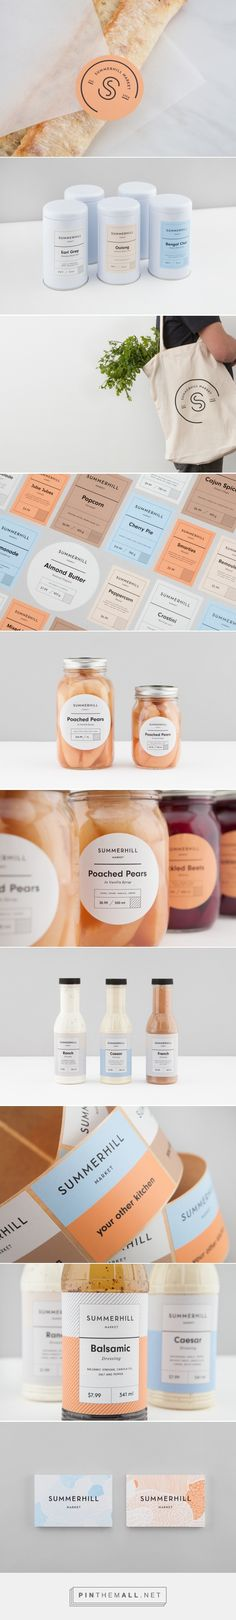 Packaging Design and Branding: Summerhill Market - created via https://pinthemall.net